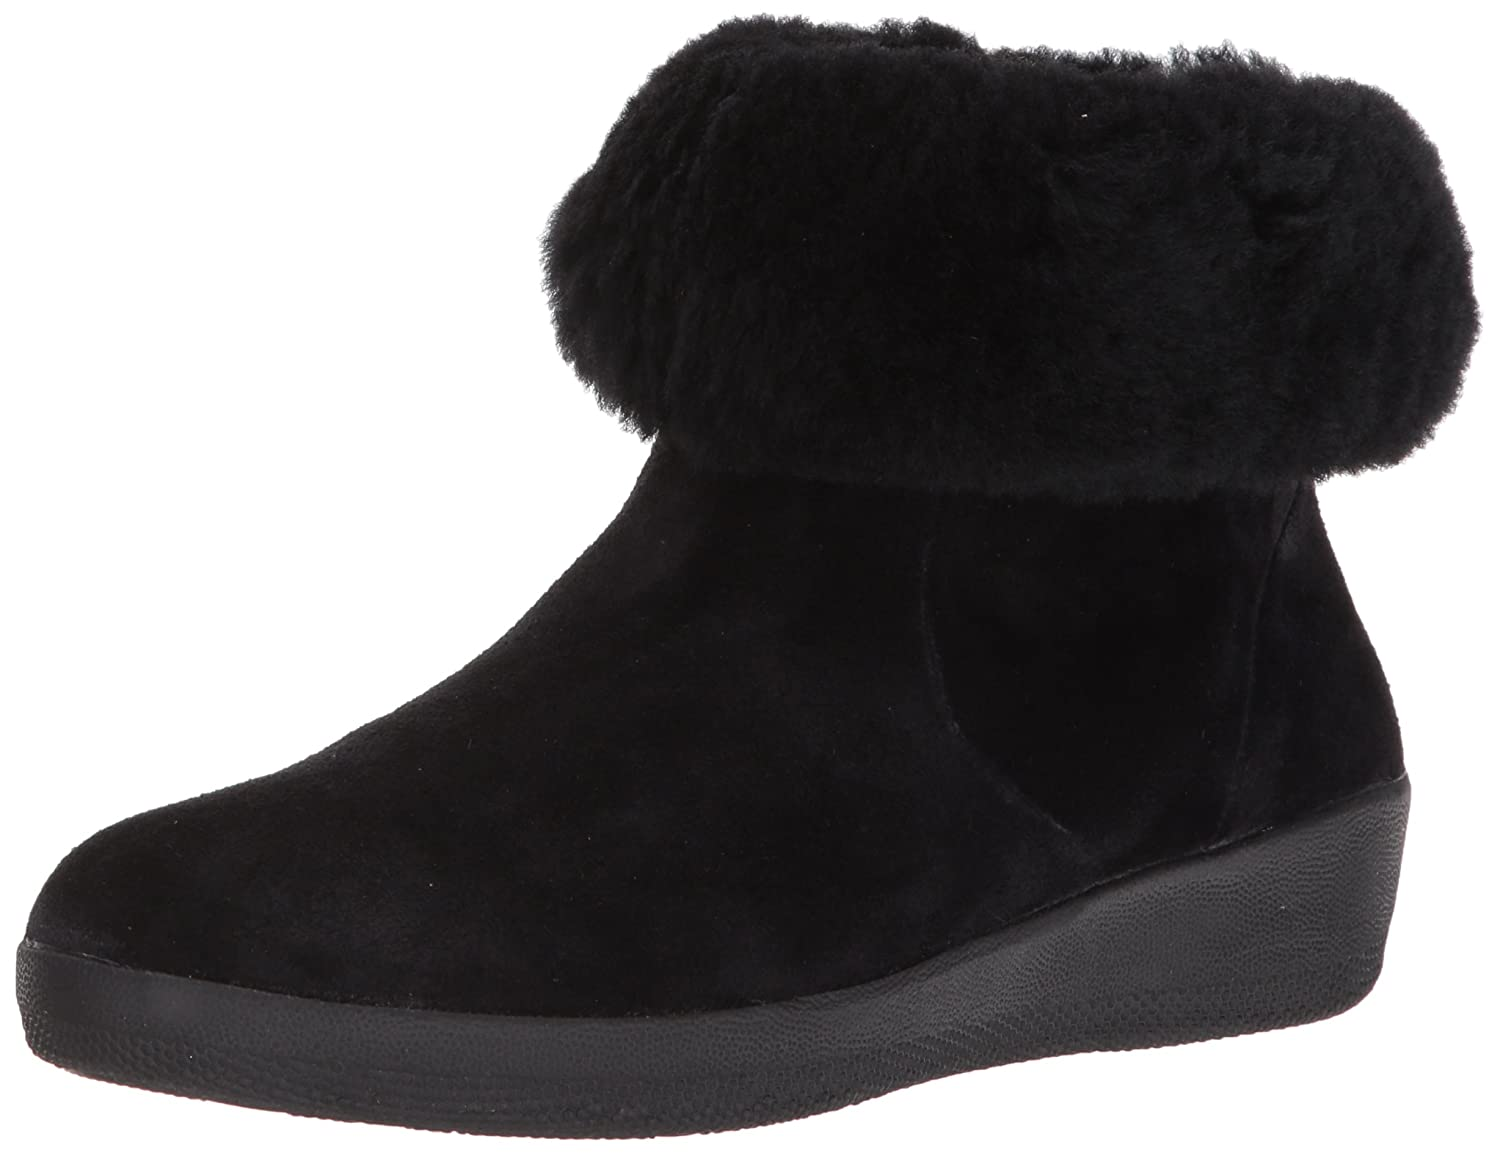 FitFlop Women's Skatebootie Suede Shearling Ankle Boot B06XGJZHLX 5 B(M) US|Black